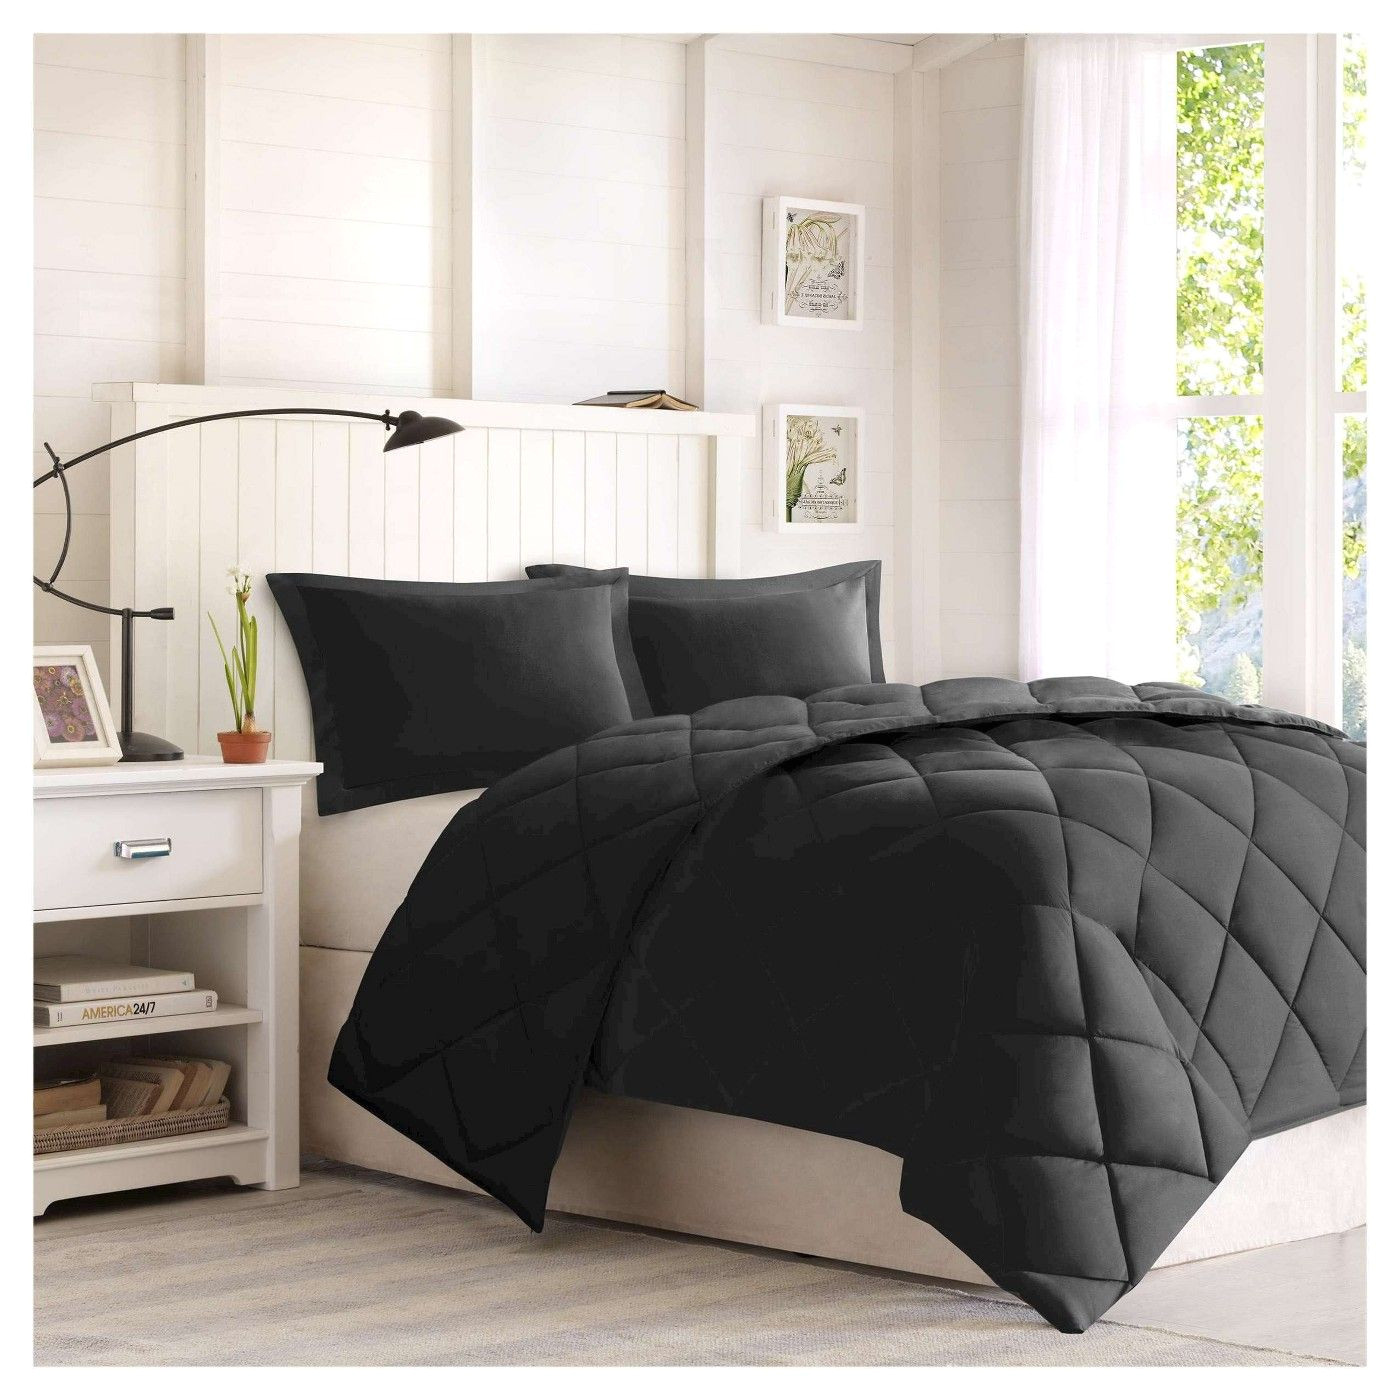 windsor reversible microfiber down alternative comforter set w 3m stain resistance finishing image 1 of 2